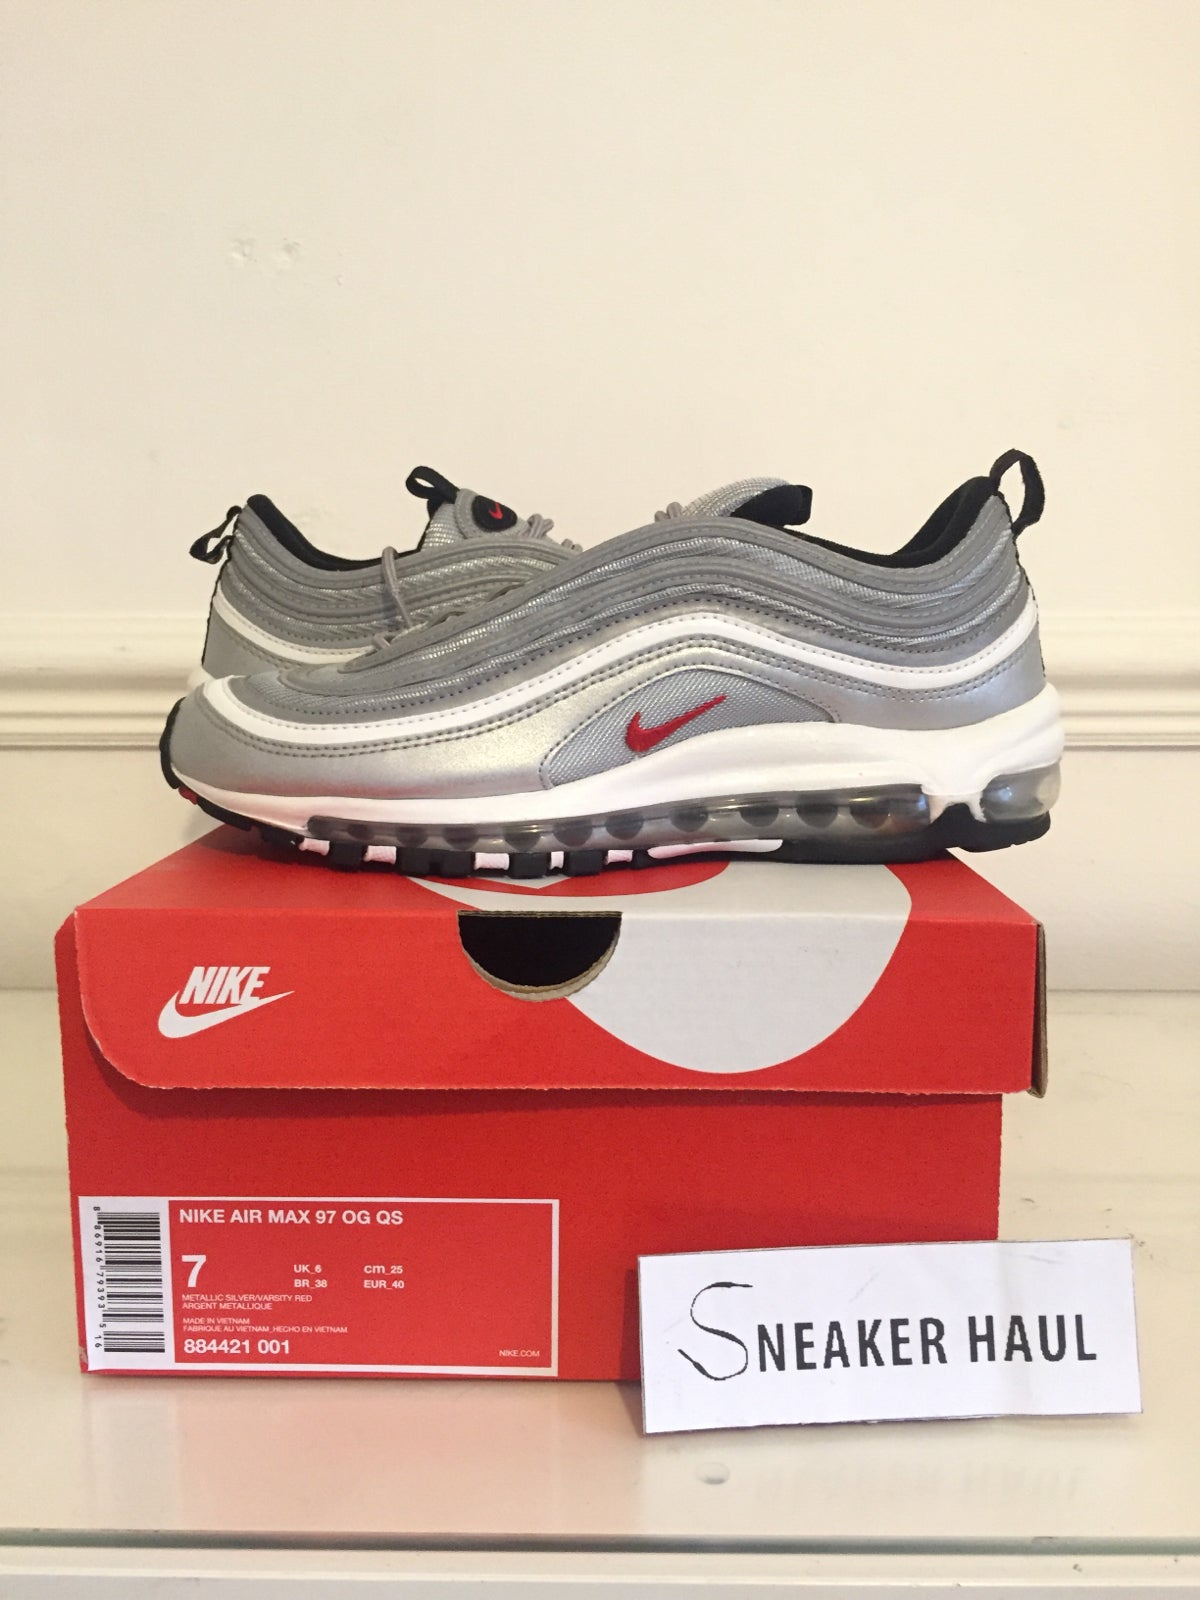 online store 1d36a 09042 Image of Nike Air Max 97 OG QS Silver Bullet 2016 ...